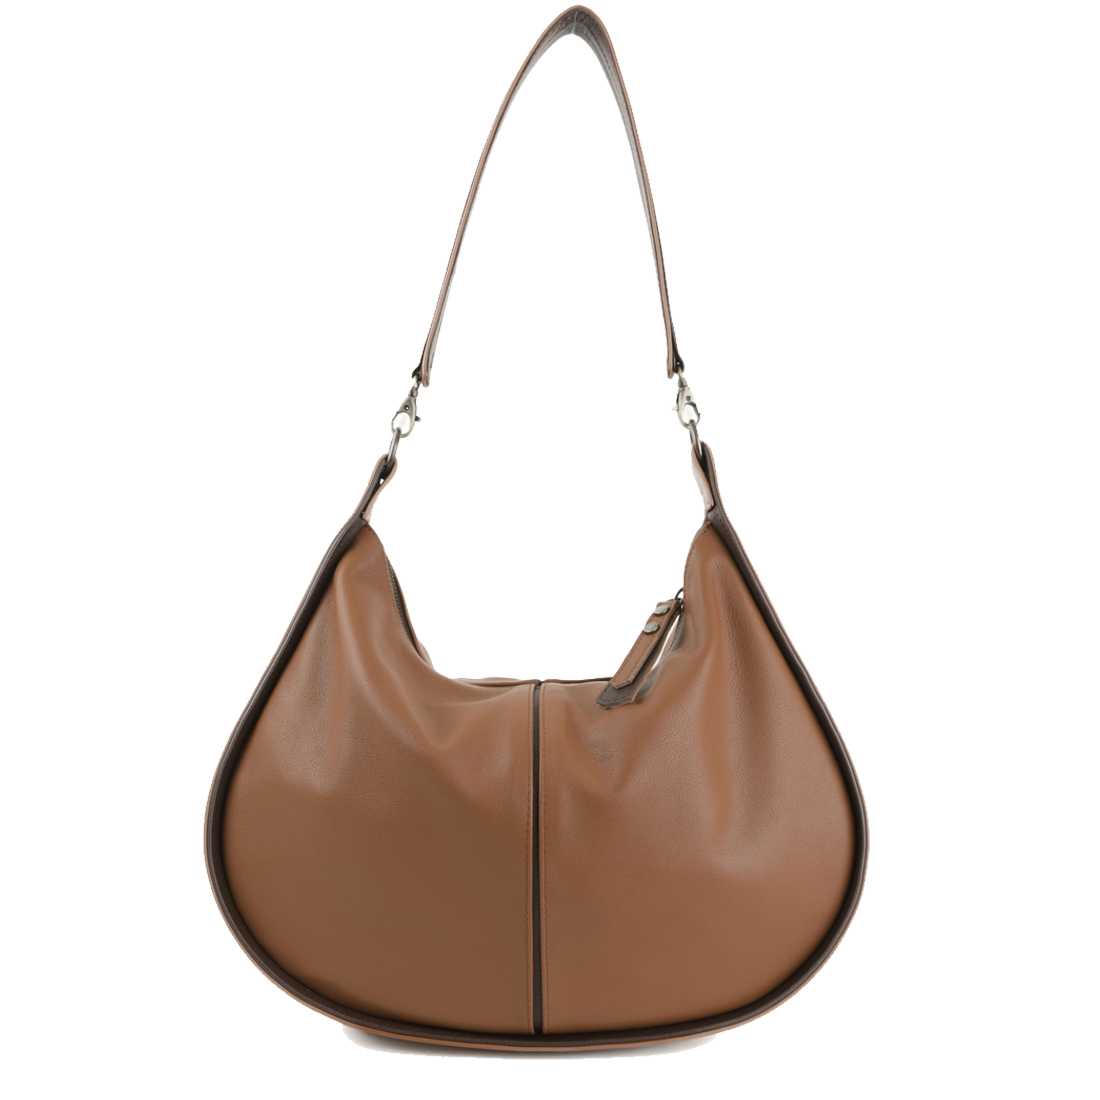 Lizzie Tan Leather Shoulder Bag